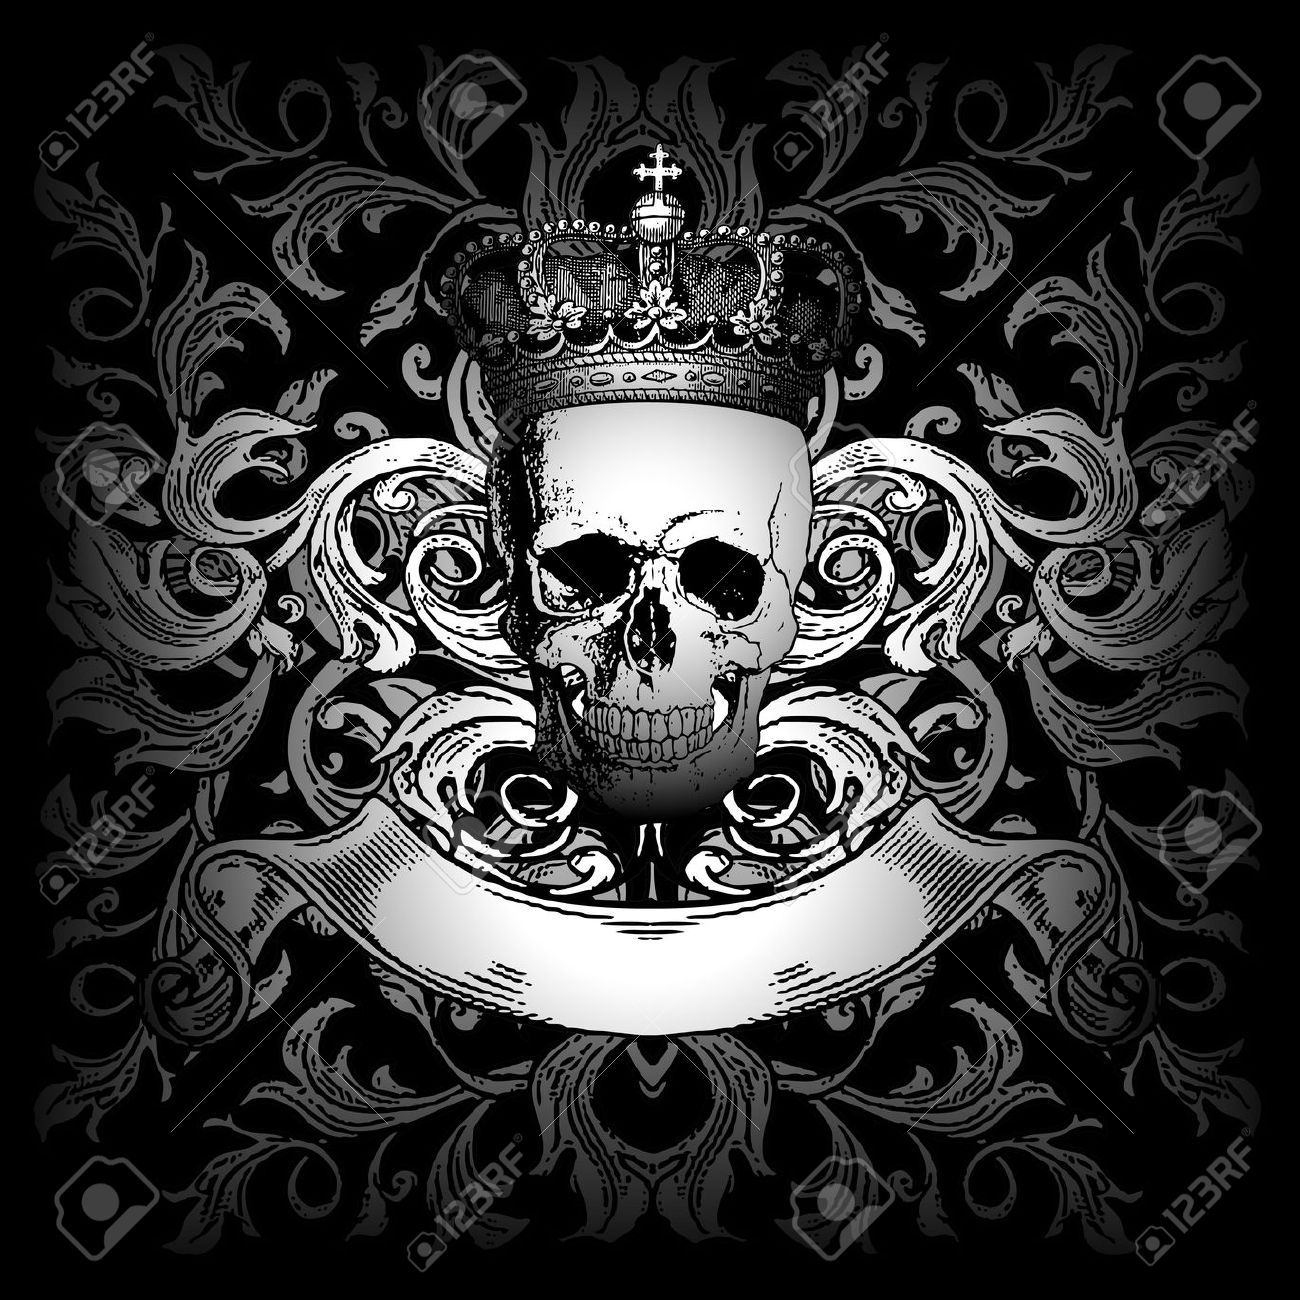 Skull and crown cliparts stock vector and royalty free skull and crowned skulls - Totenkopf wandbild ...